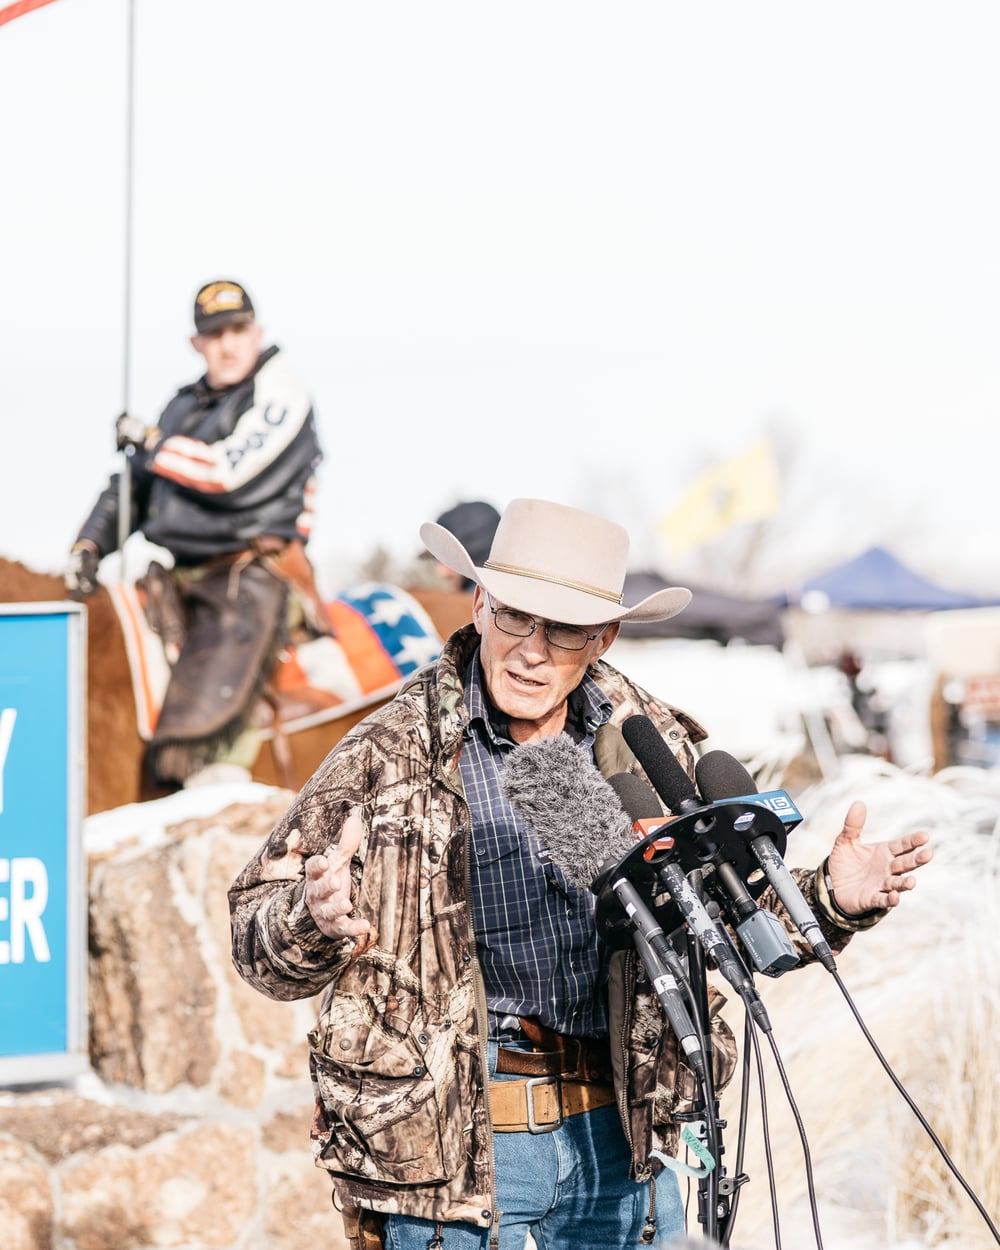 burns_oregon_standoff_688.jpg